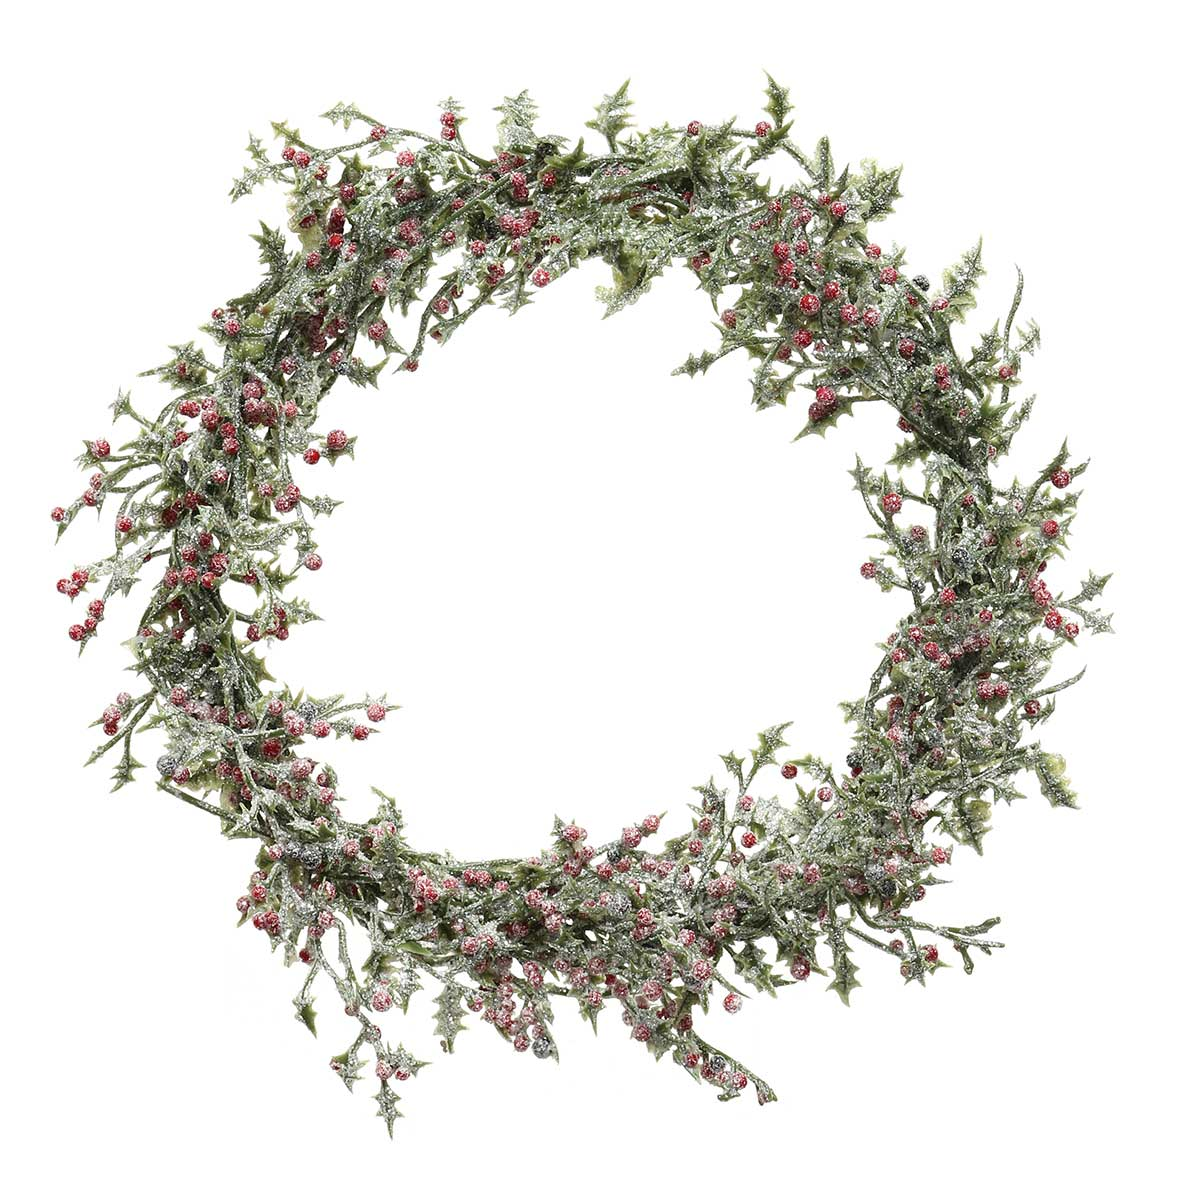 ICED HOLLY WREATH WITH RED